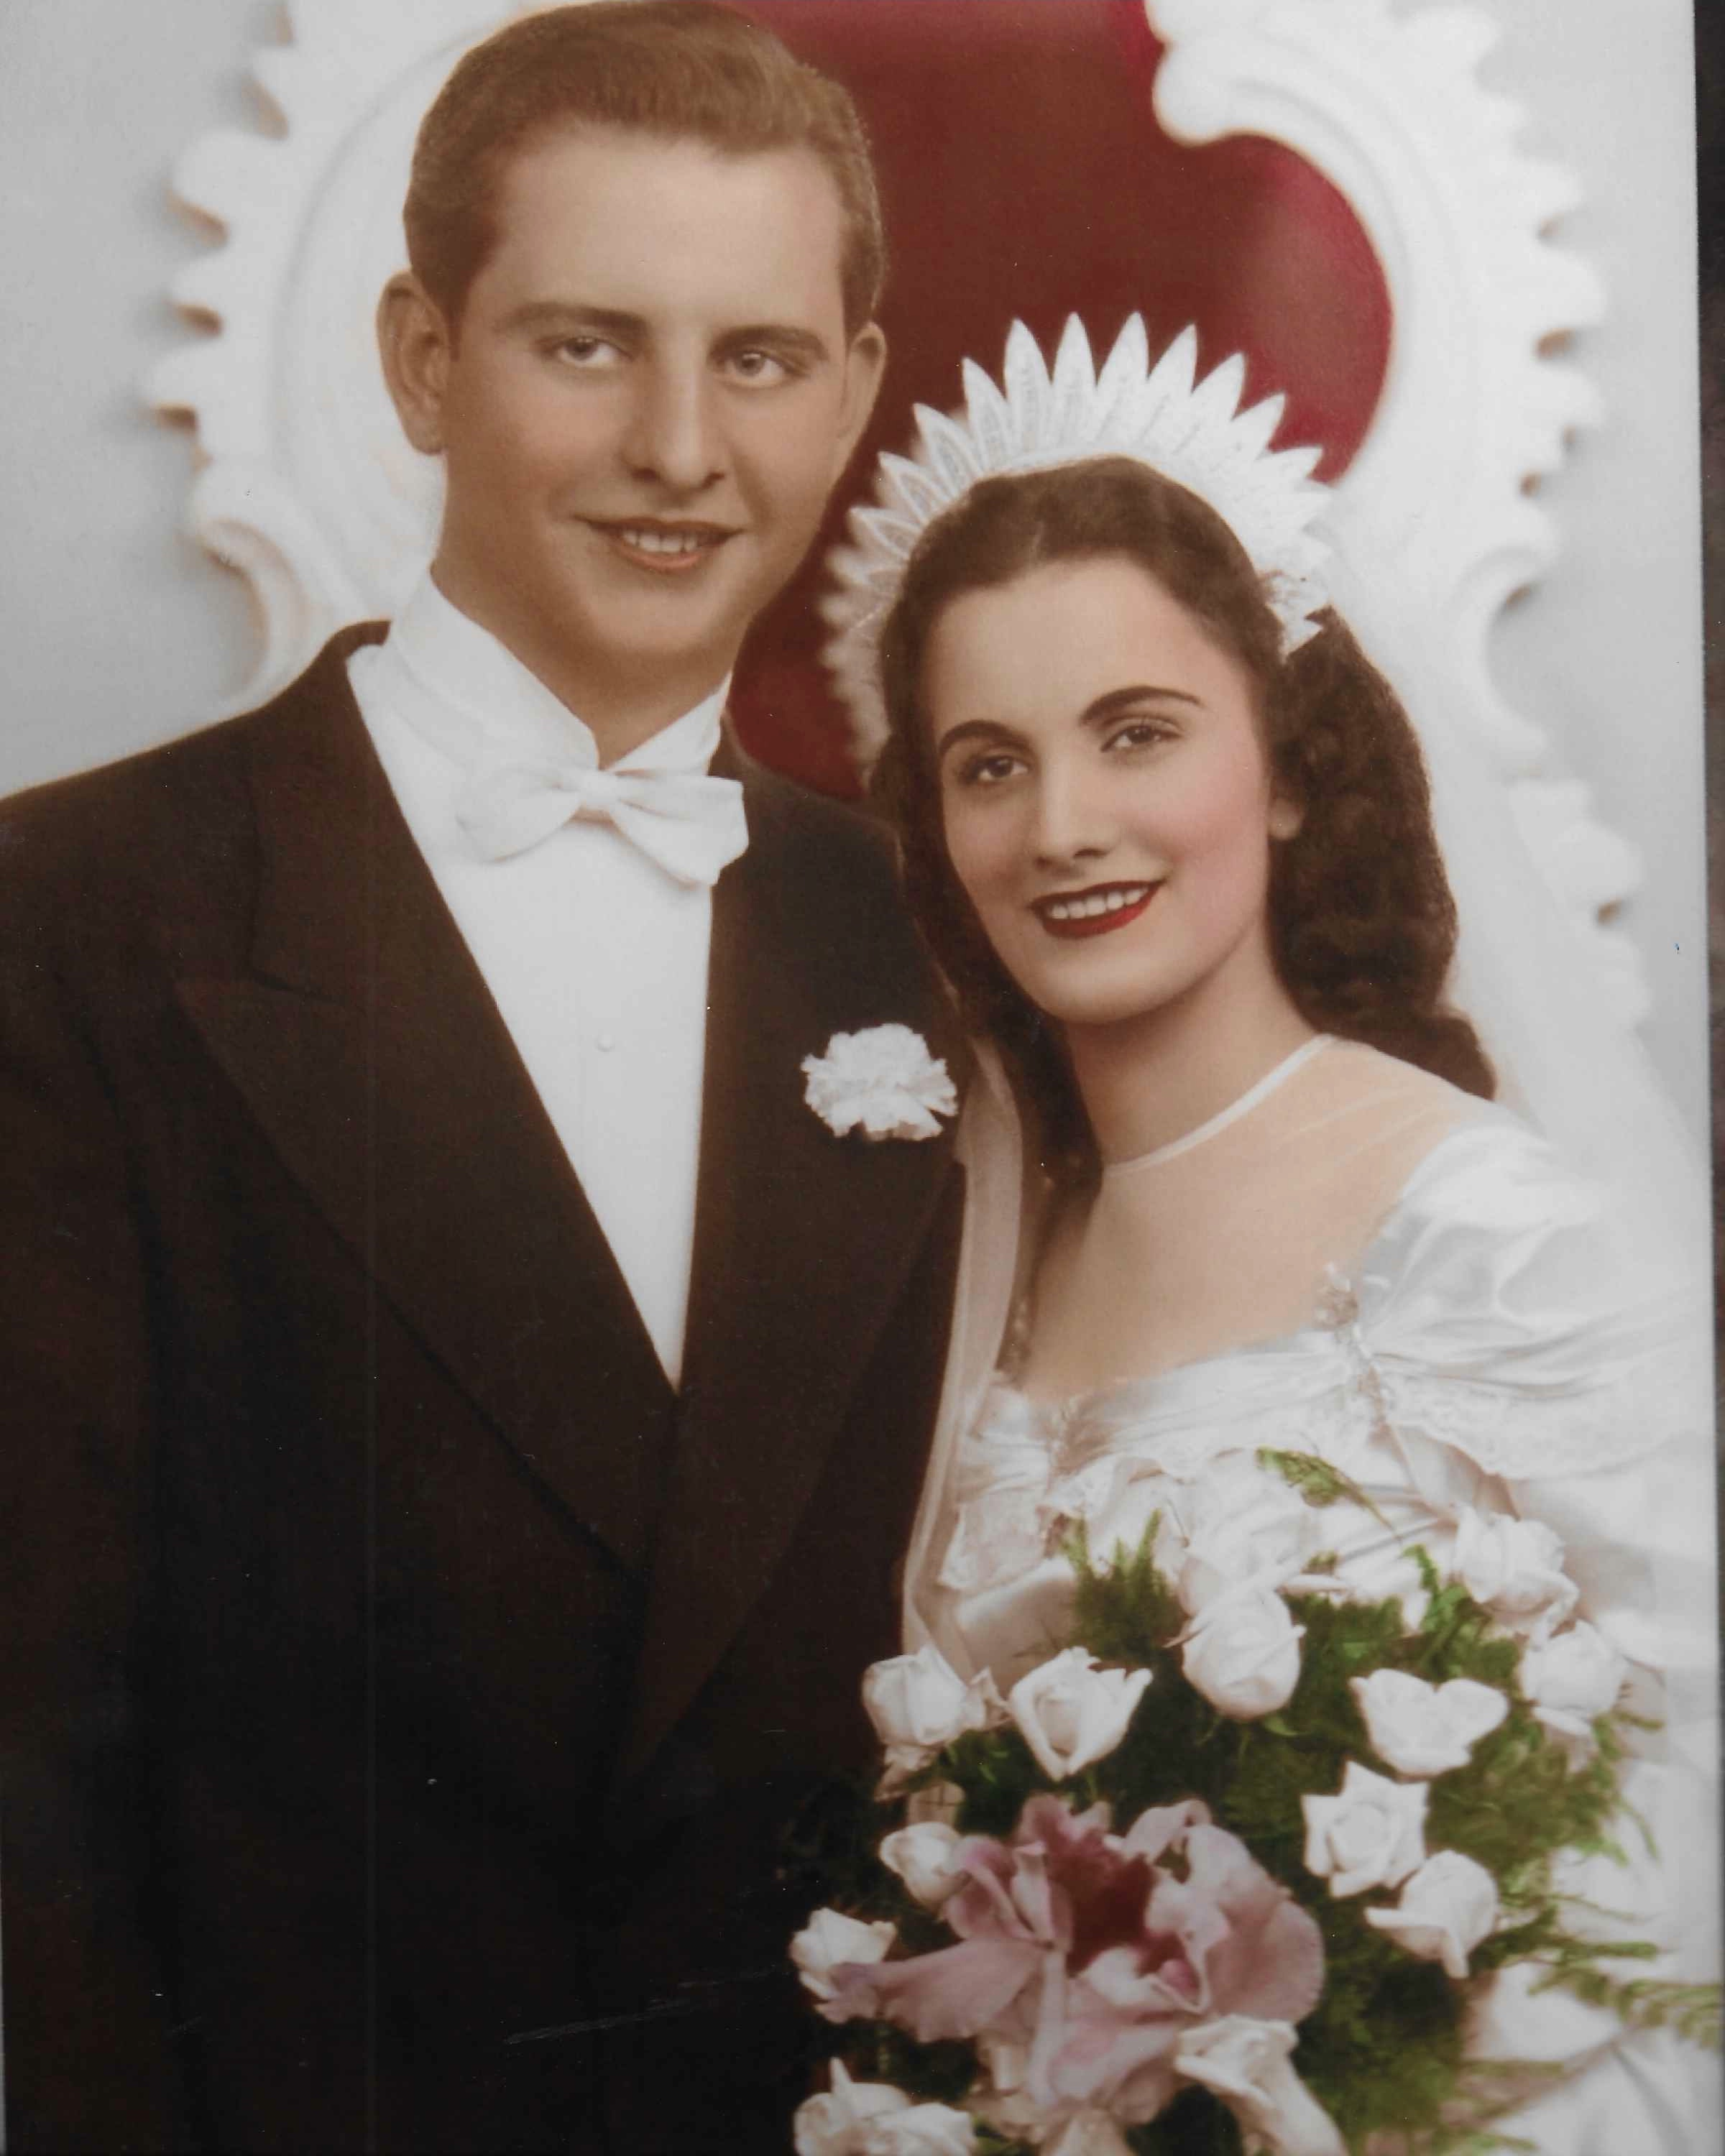 Al and Daisy Monzo's 1948 wedding